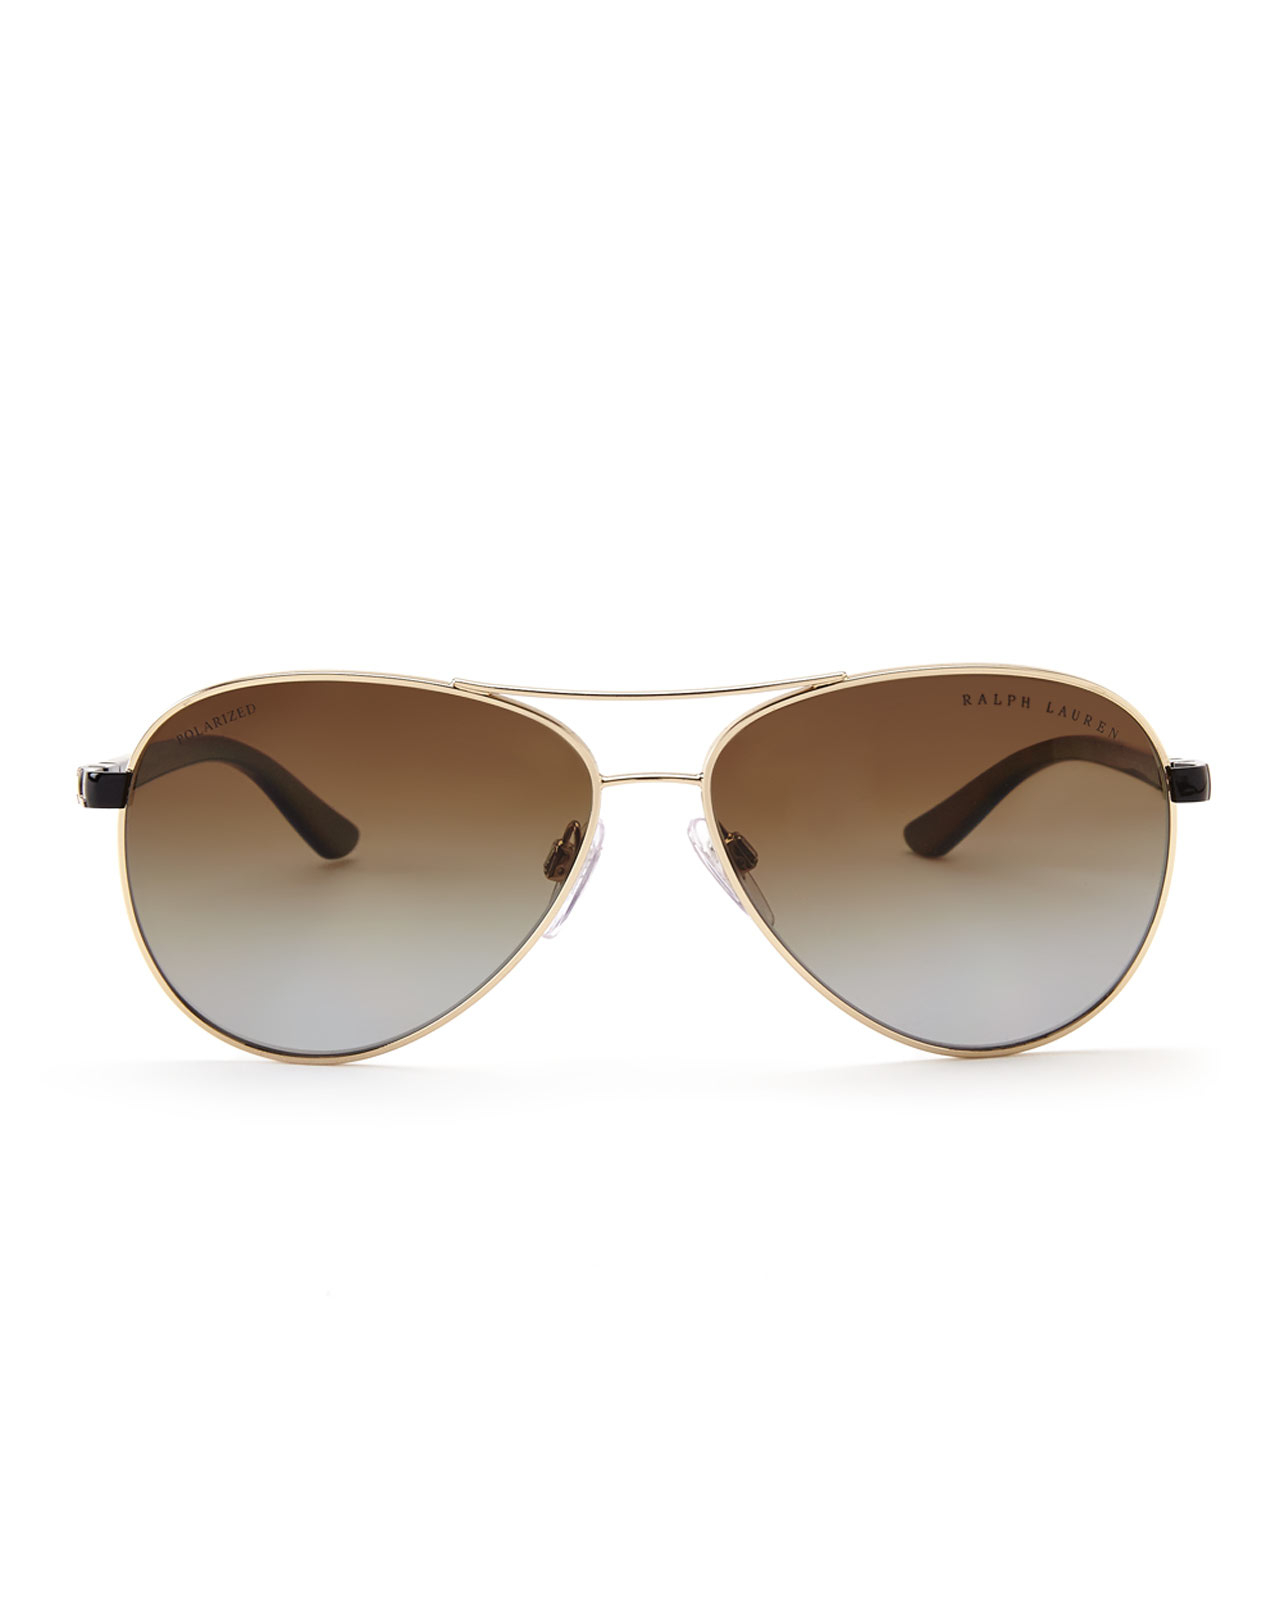 Ralph Lauren Polarised Sunglasses  ralph lauren rl7046 gold tone aviator polarized sunglasses in